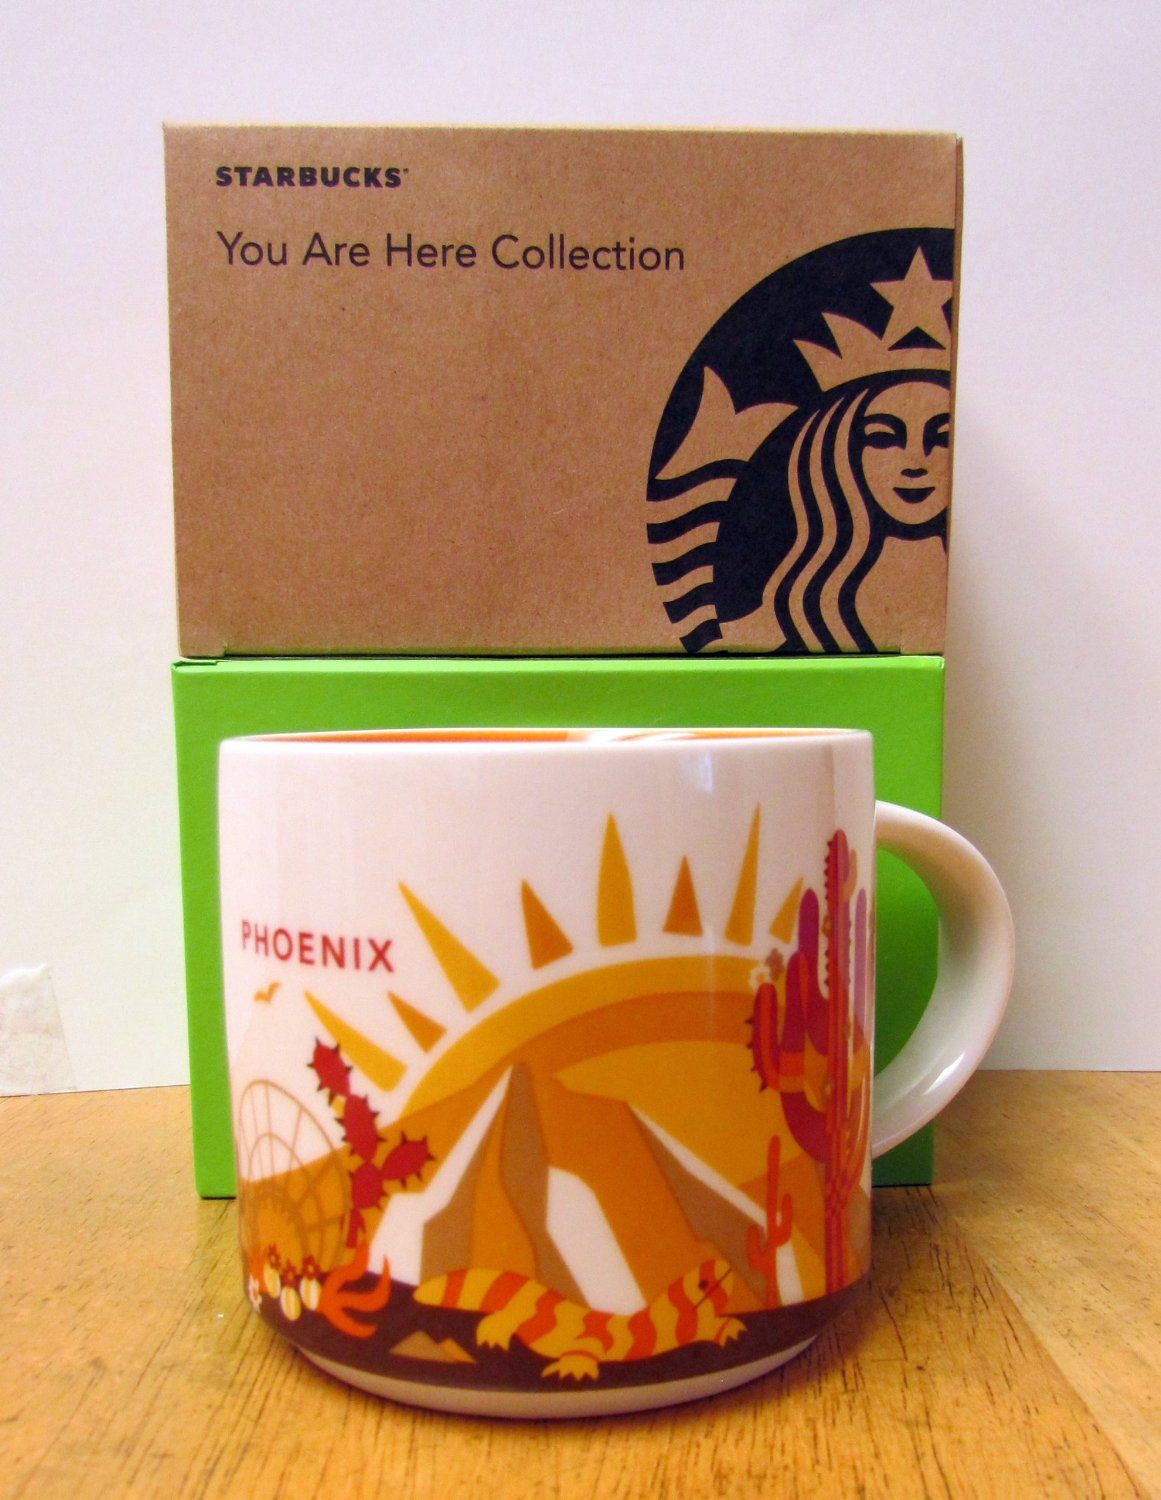 STARBUCKS 14oz Paris You Are Here Coffee Mug Collection City Collector Cups